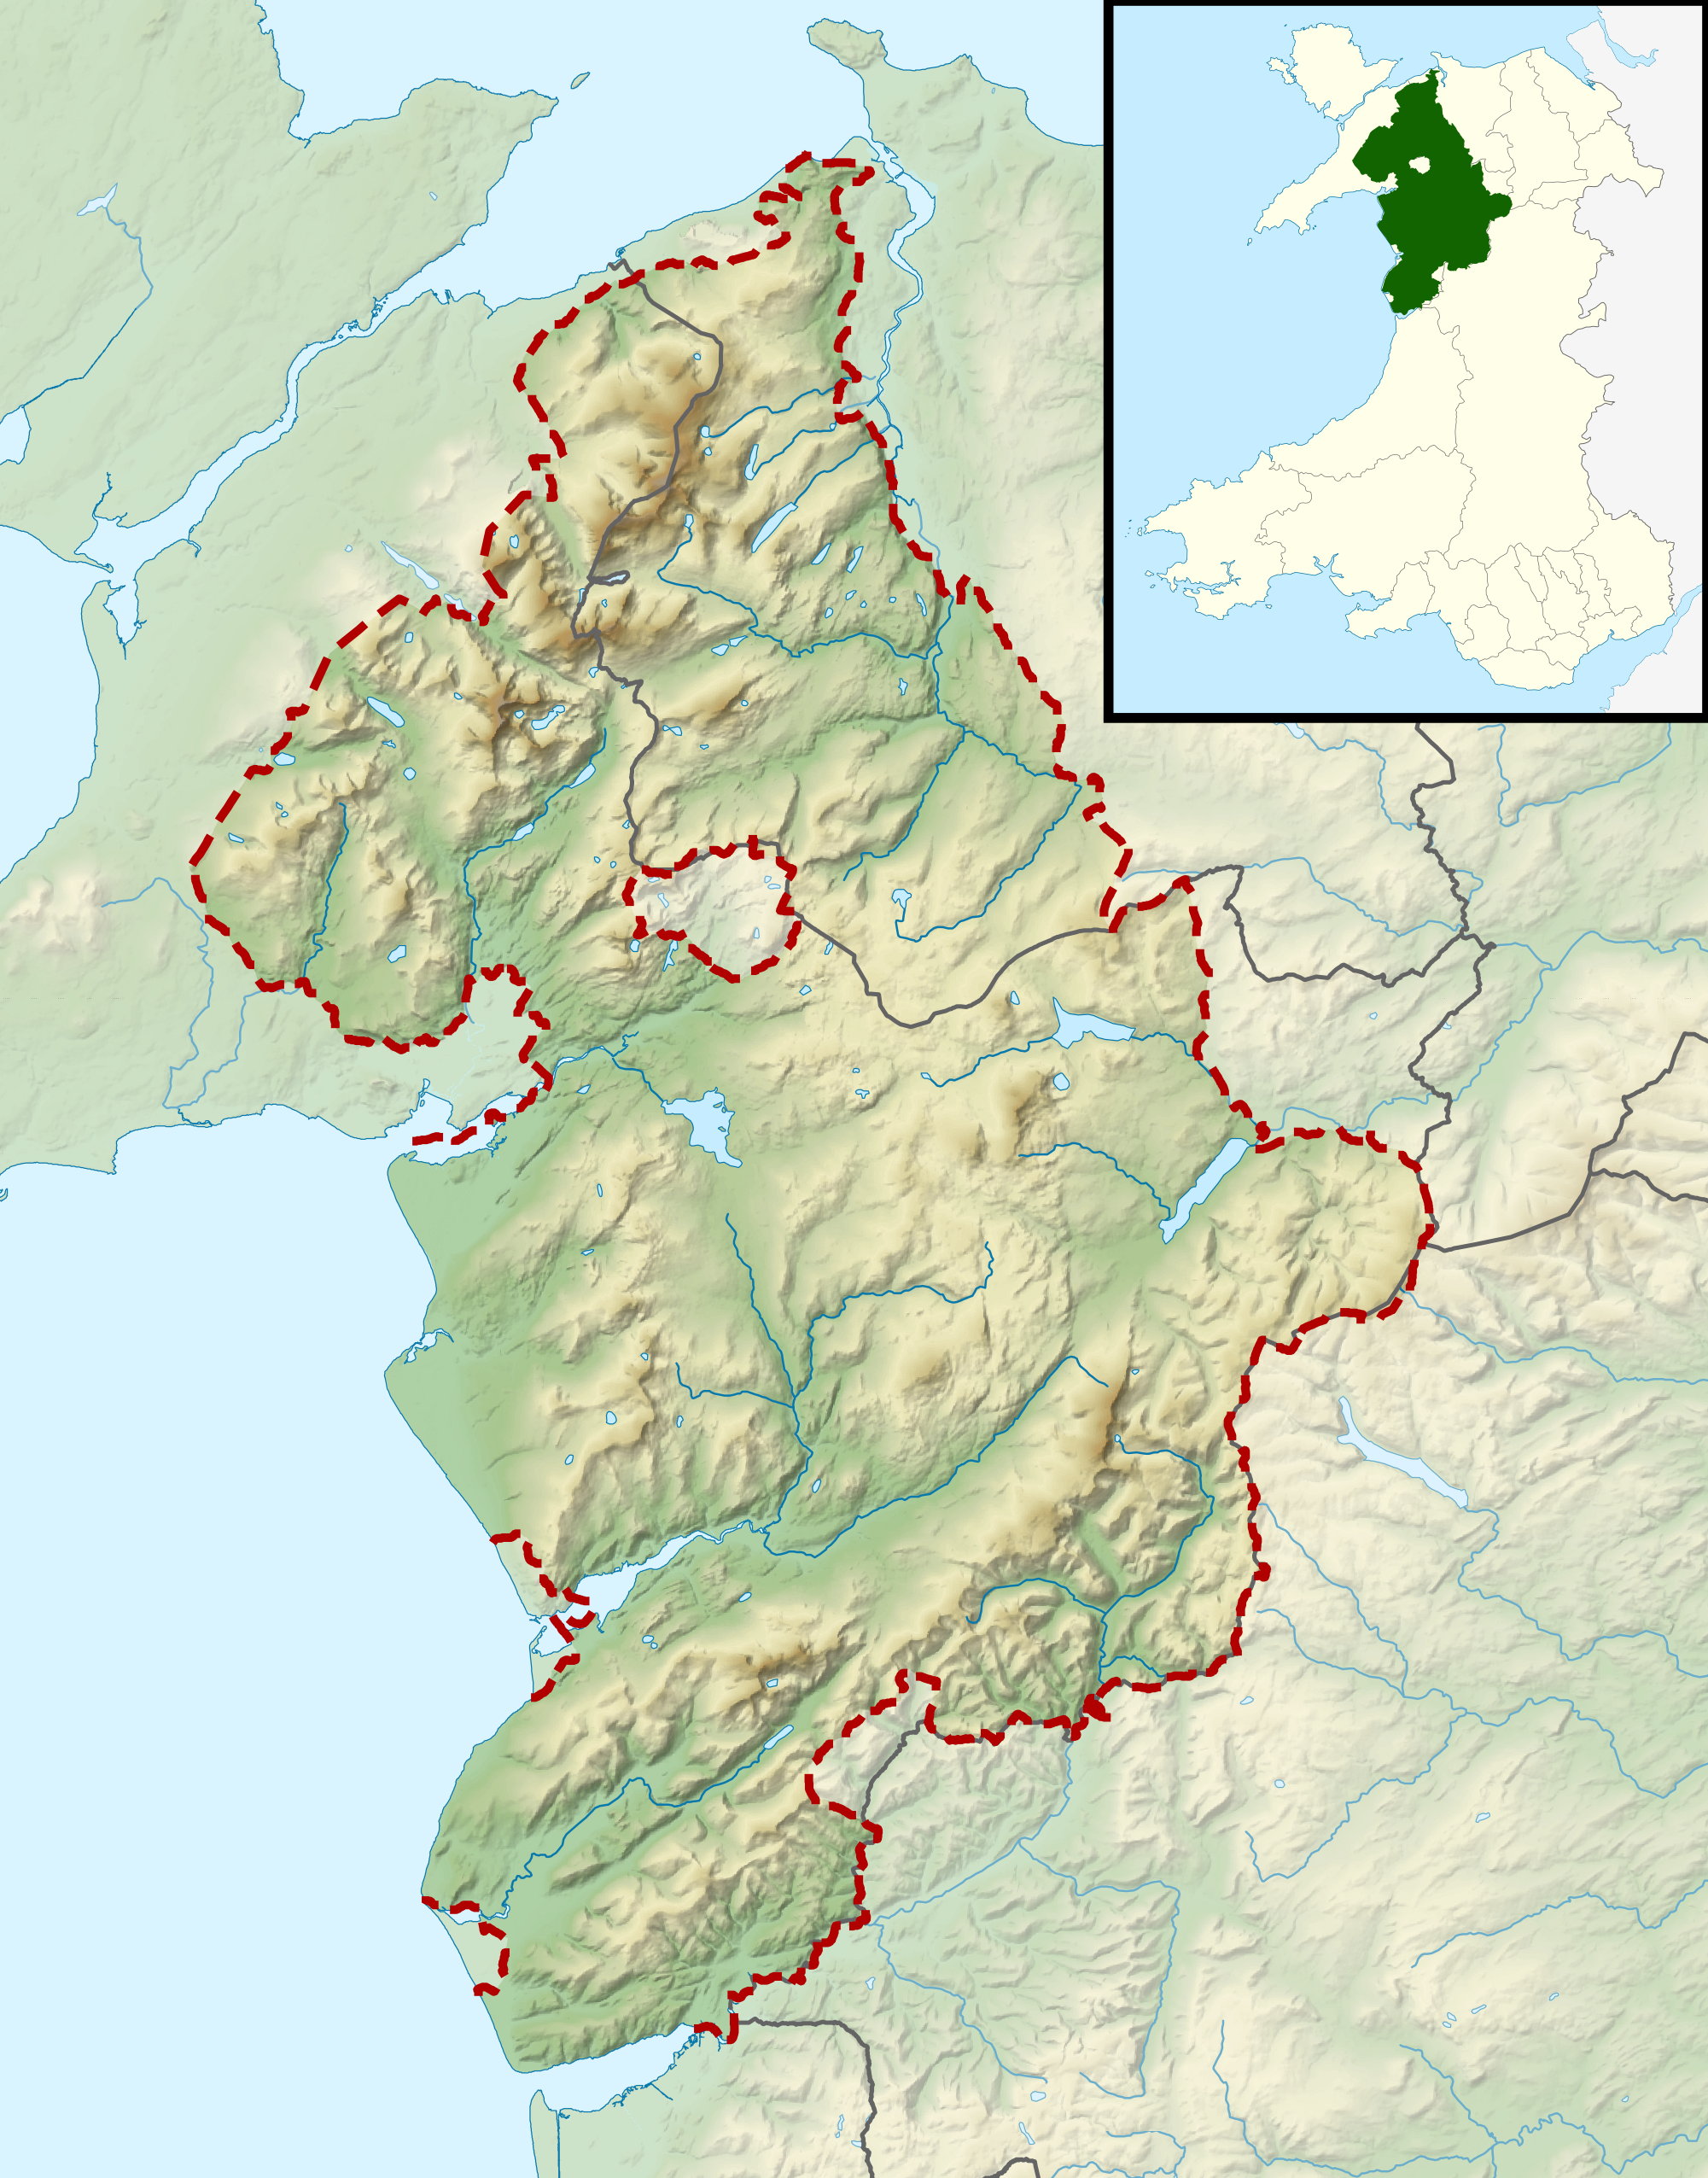 map of snowdonia national park wales uk